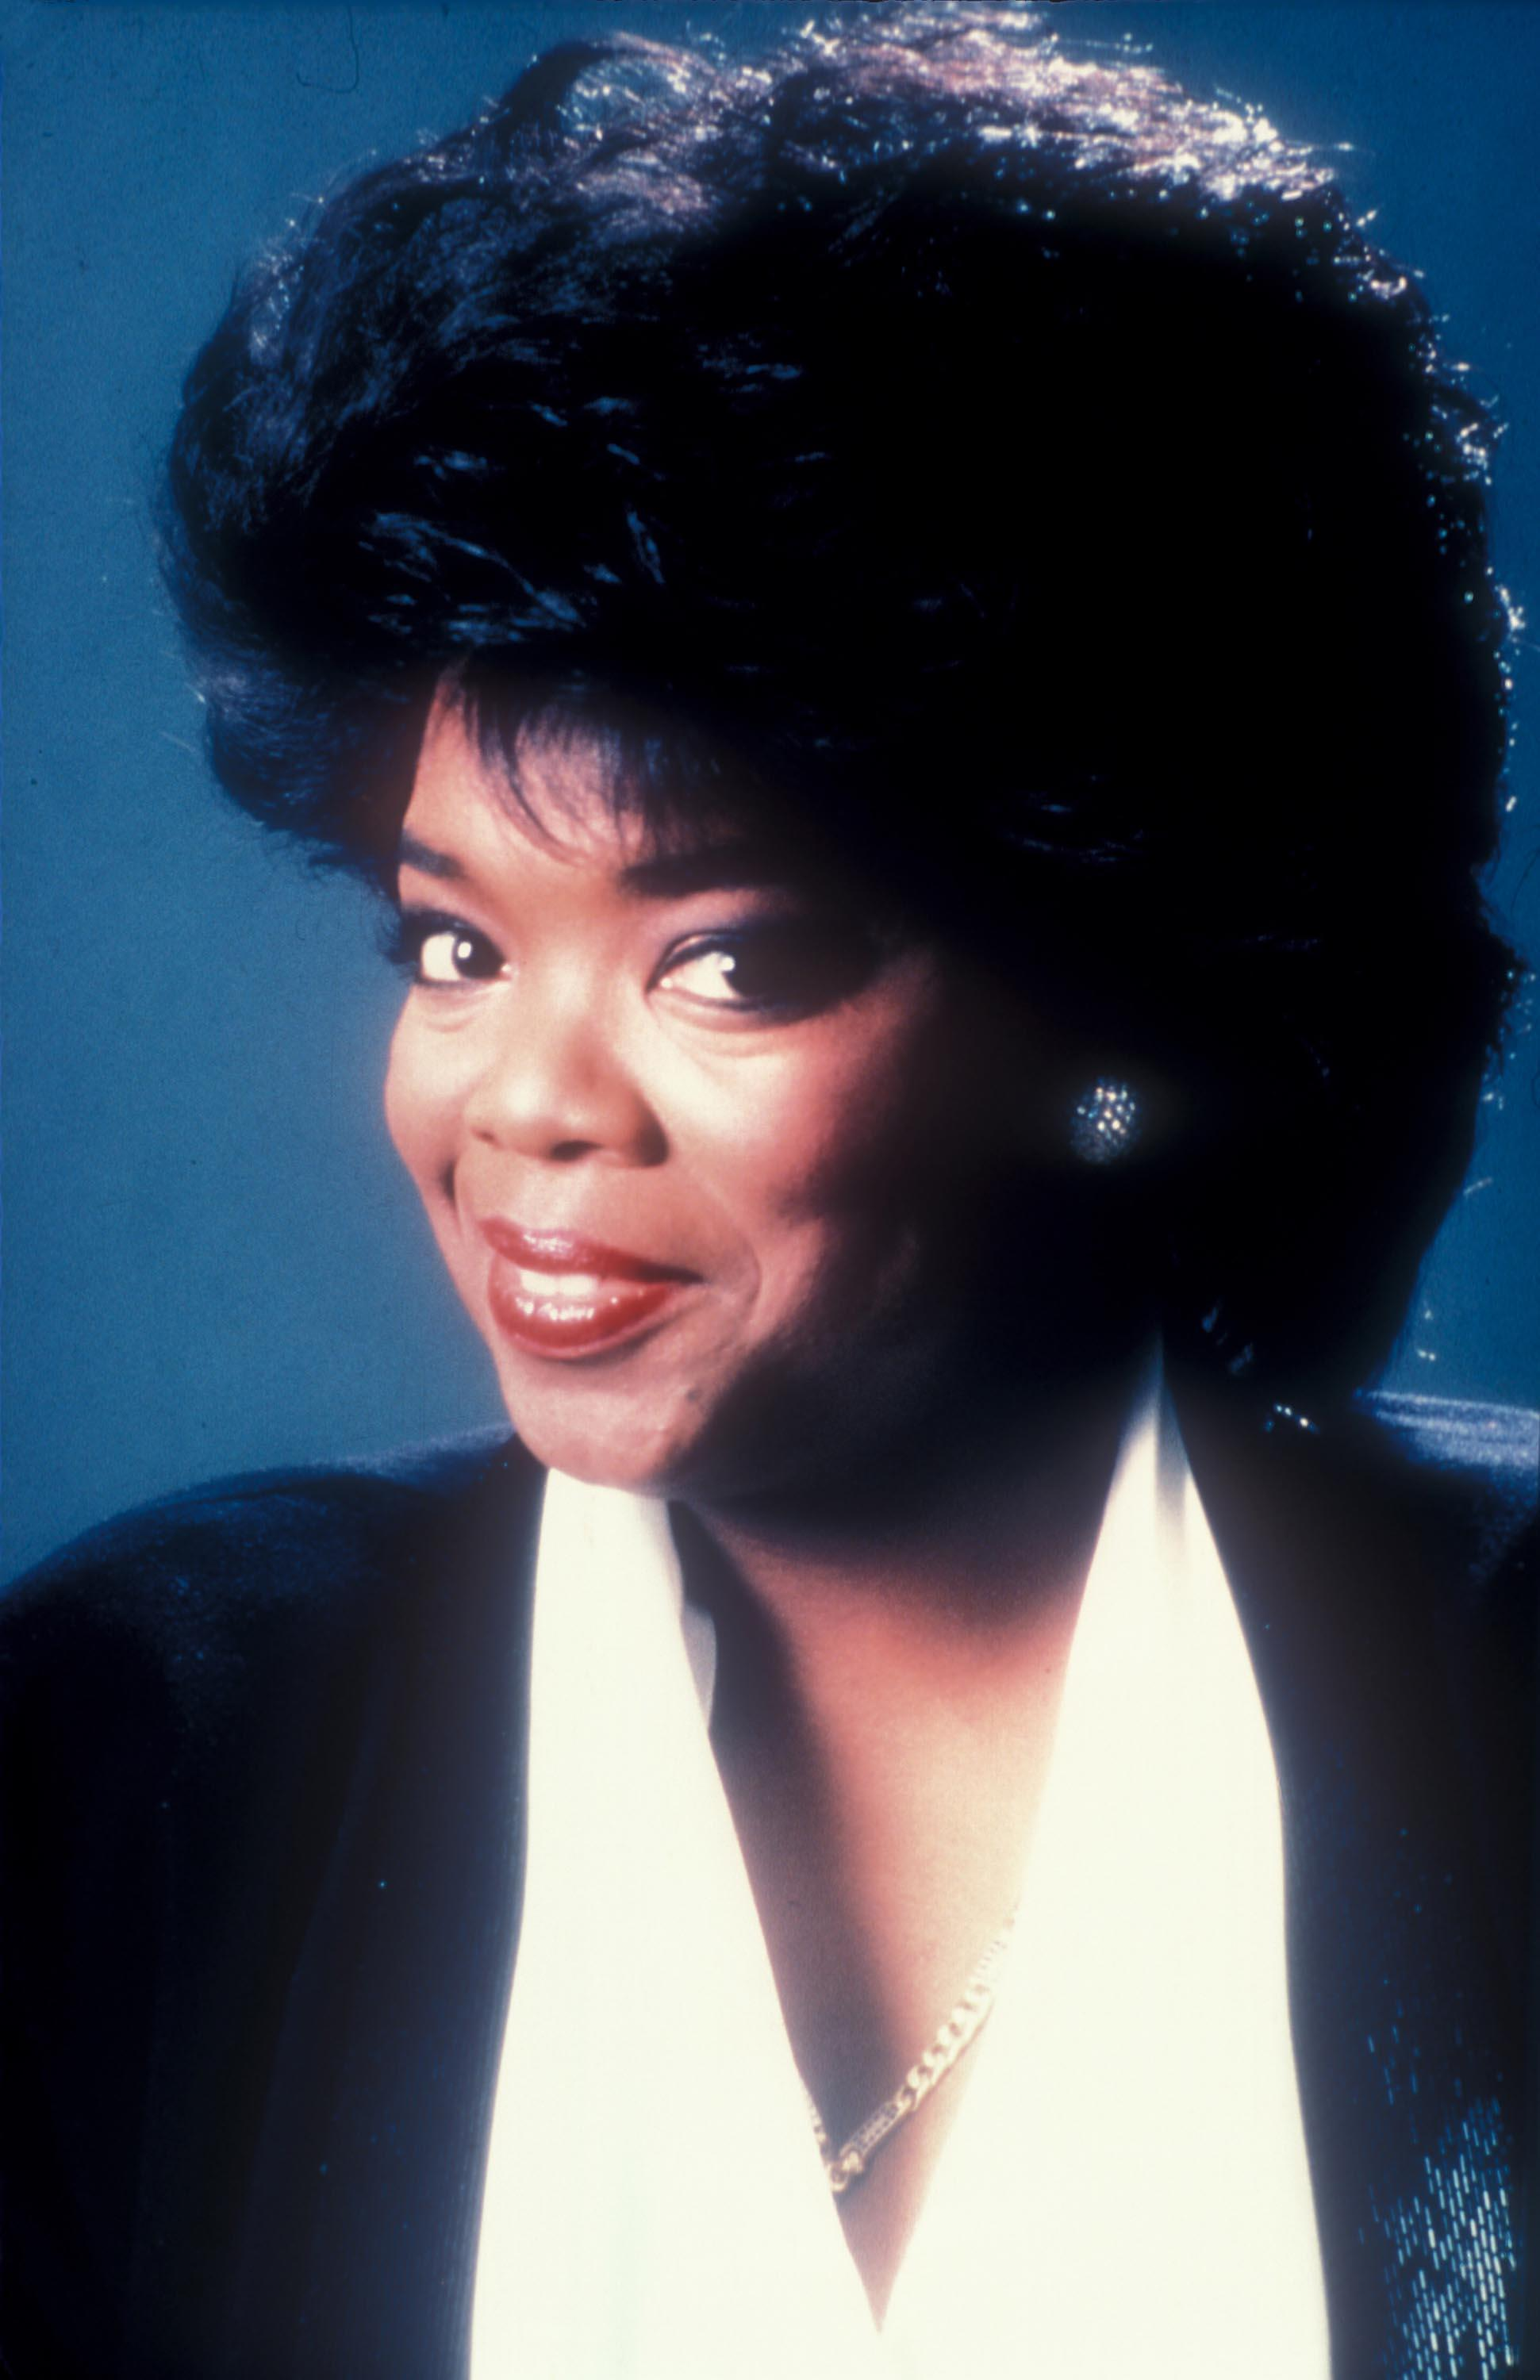 Oprah Winfrey in 1983